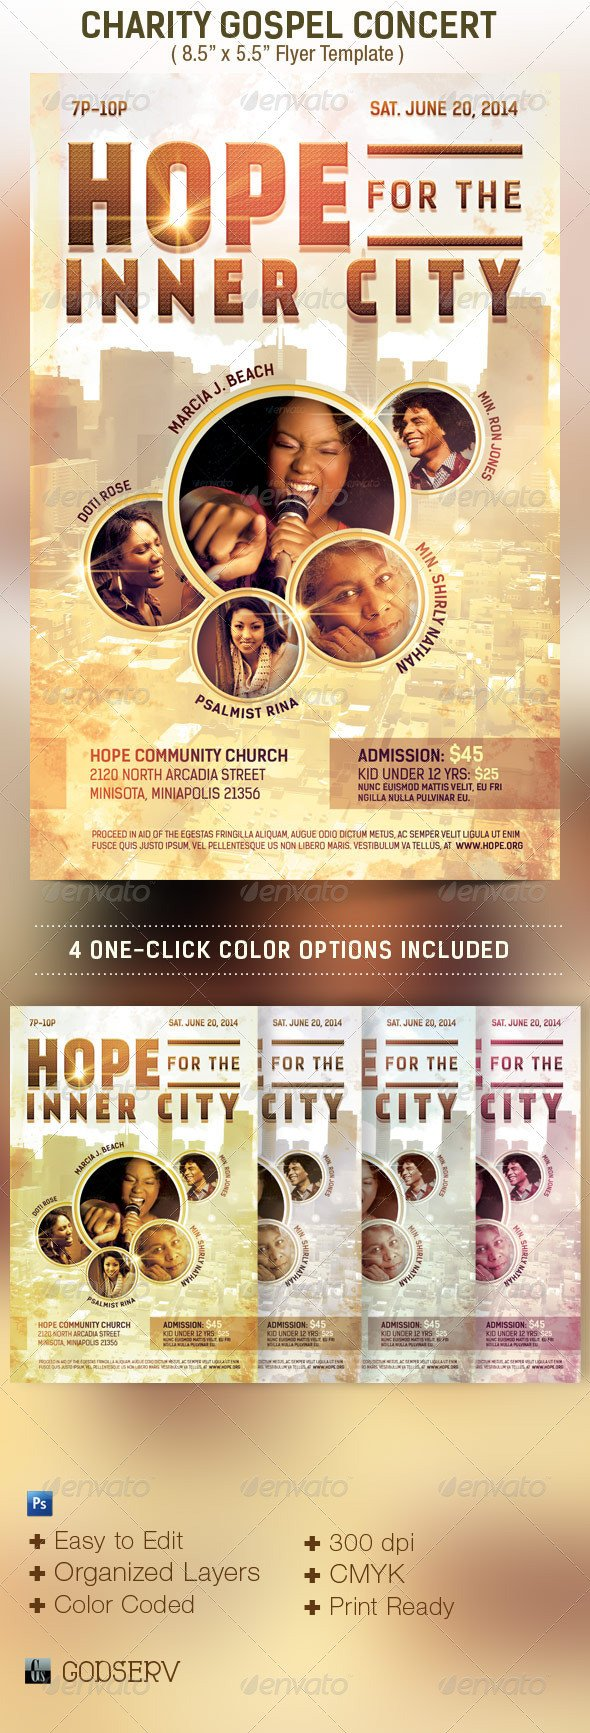 Concert Flyers Template Free Charity Concert Flyer Template by Godserv